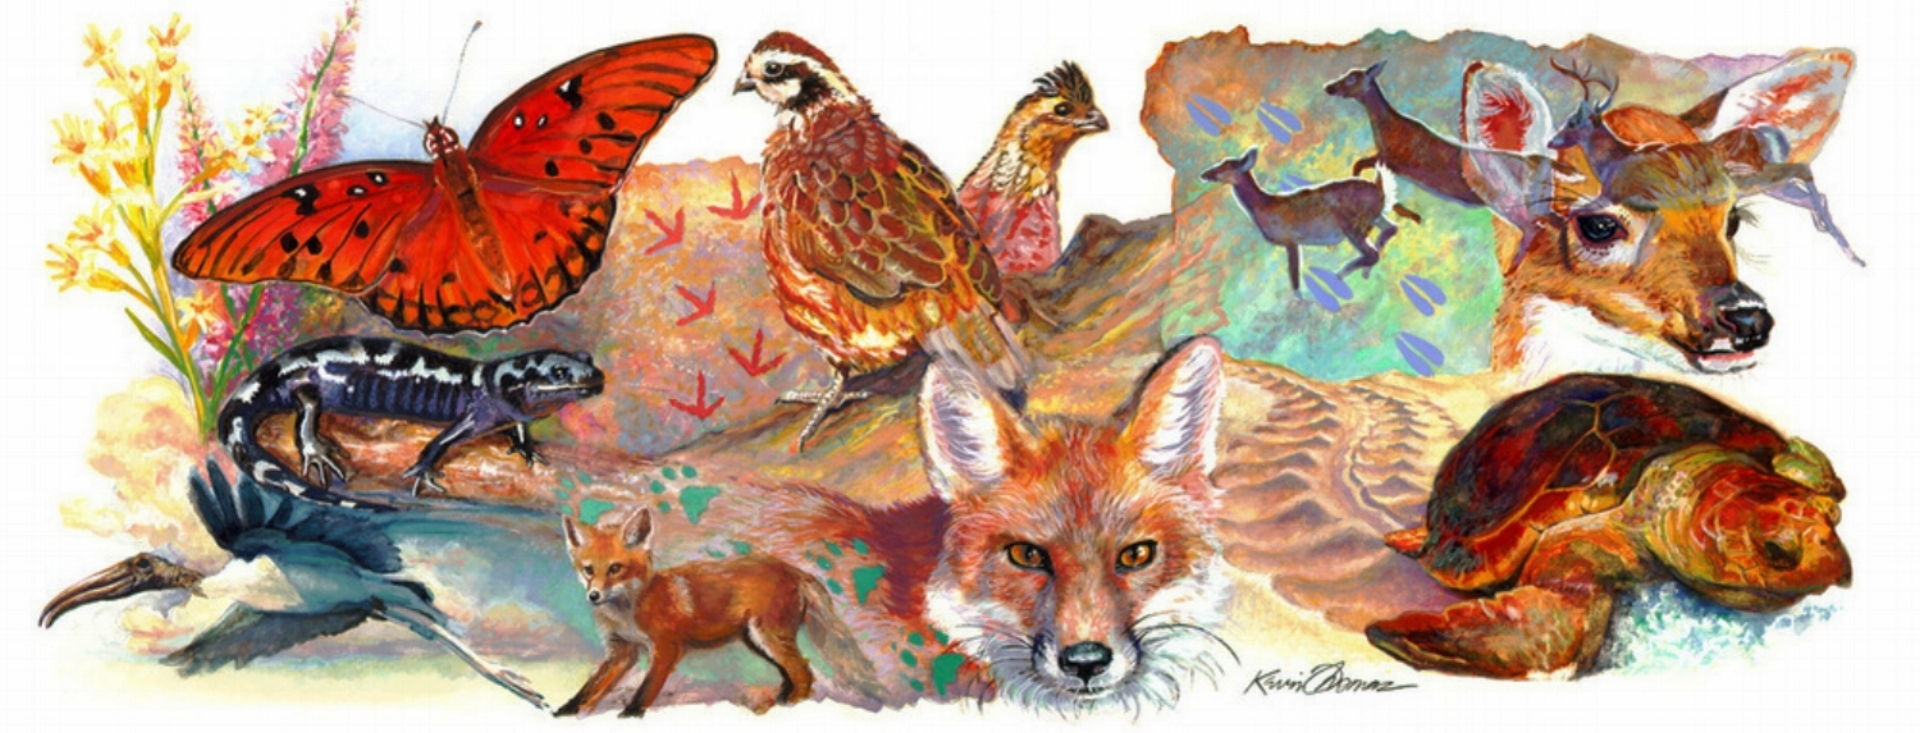 """Header Art"" FWC- Florida Fish and Wildlife Conservation Commission • Mural- watercolor. • Tallahassee, FL © KT"